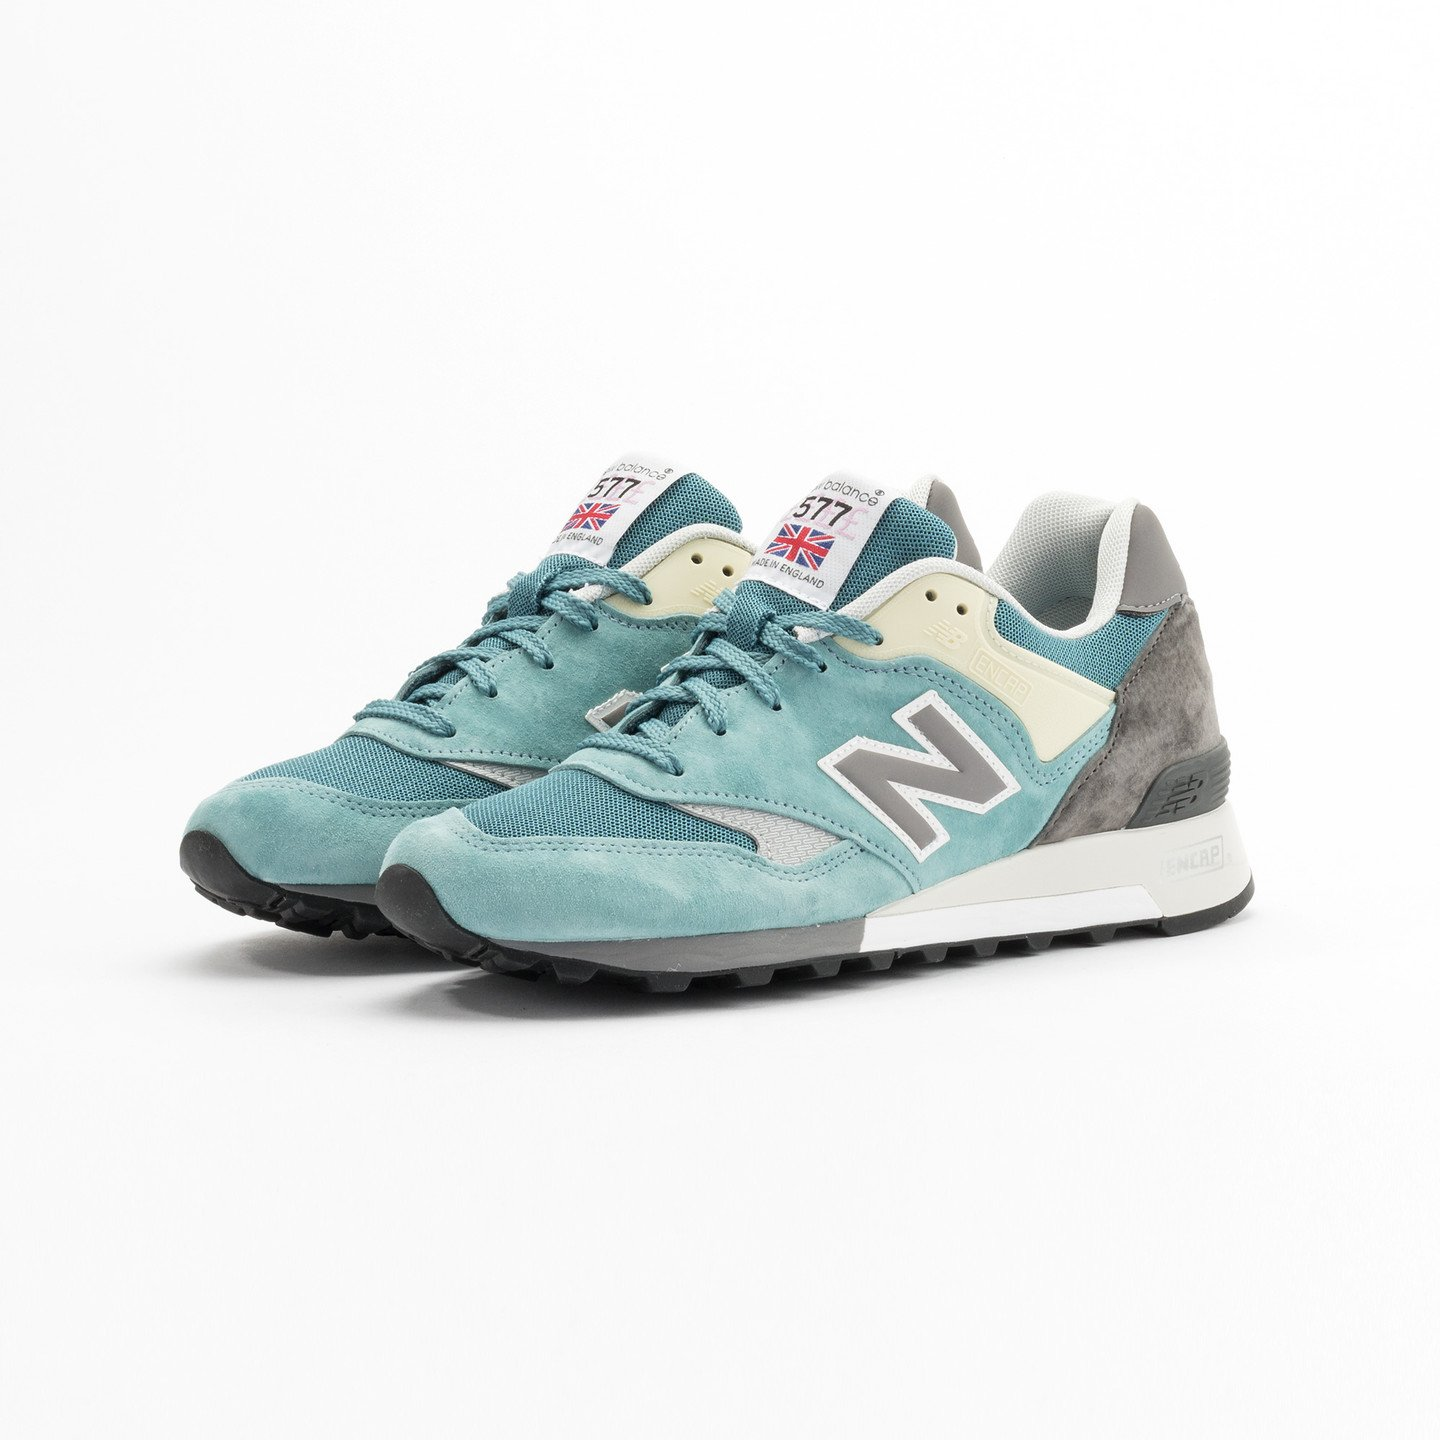 New Balance M577 ETB - Made in England Sea Glass / Grey/ Yellow M577ETB-42.5